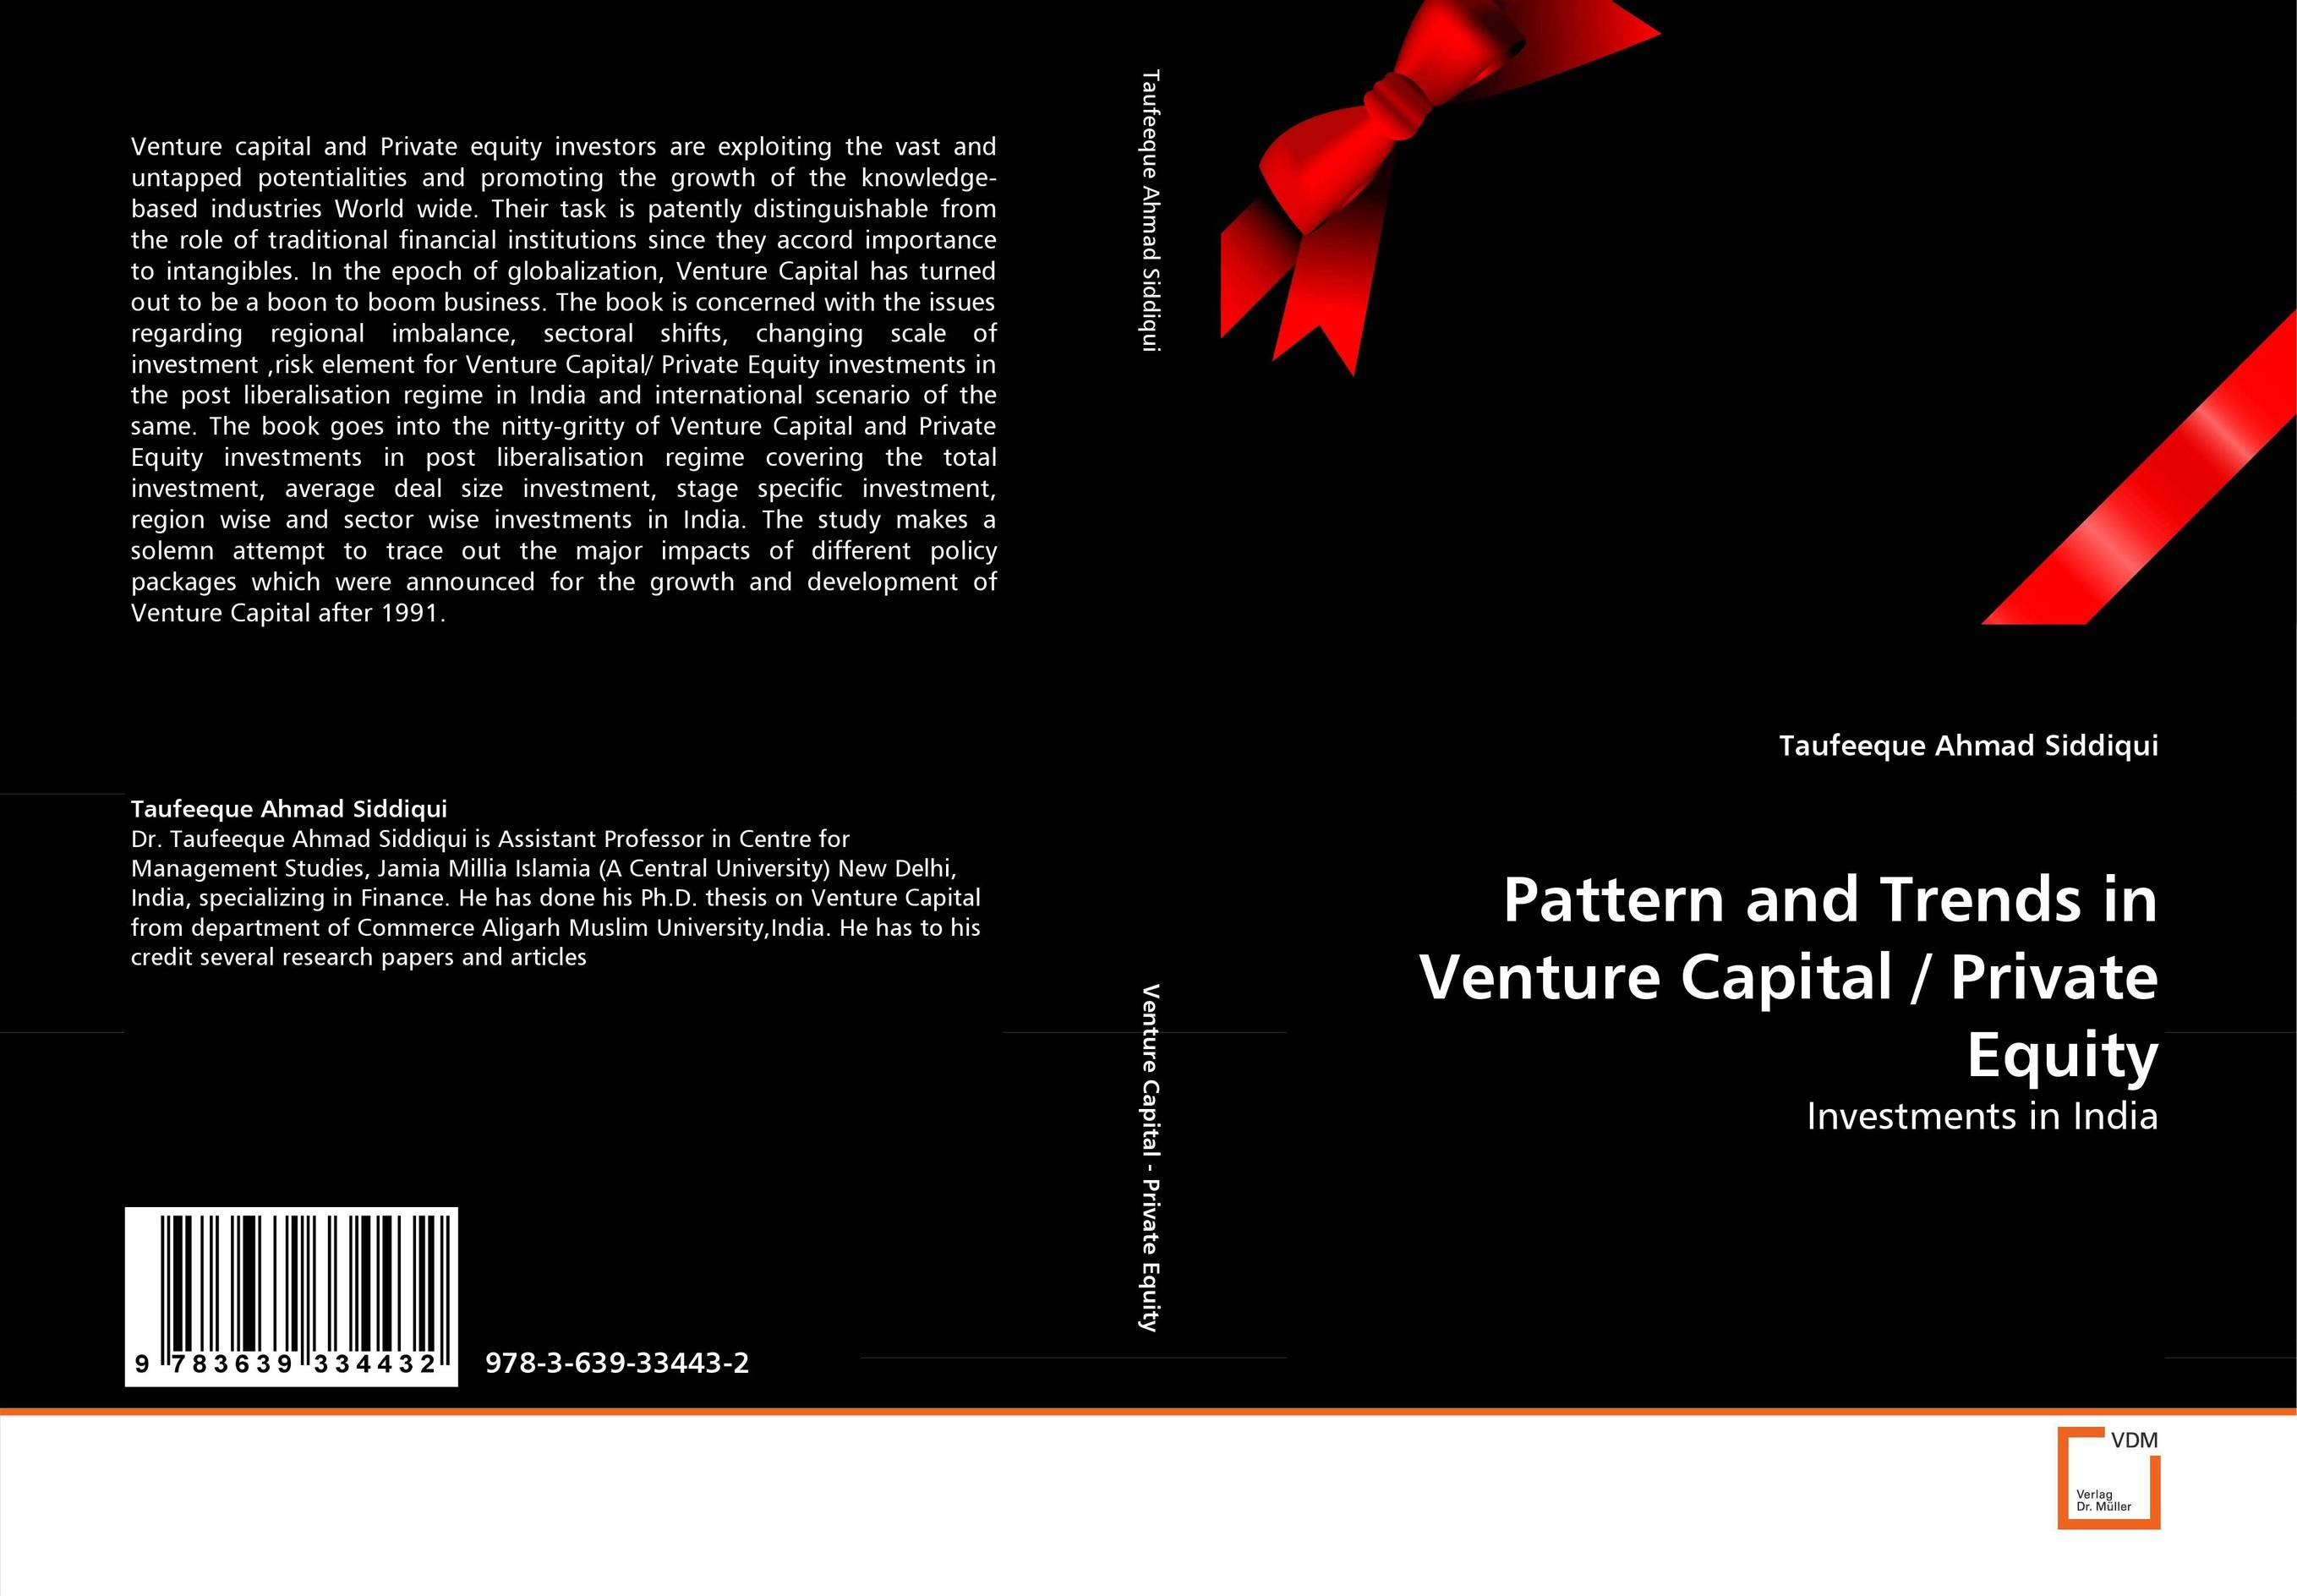 Pattern and Trends in Venture Capital / Private Equity